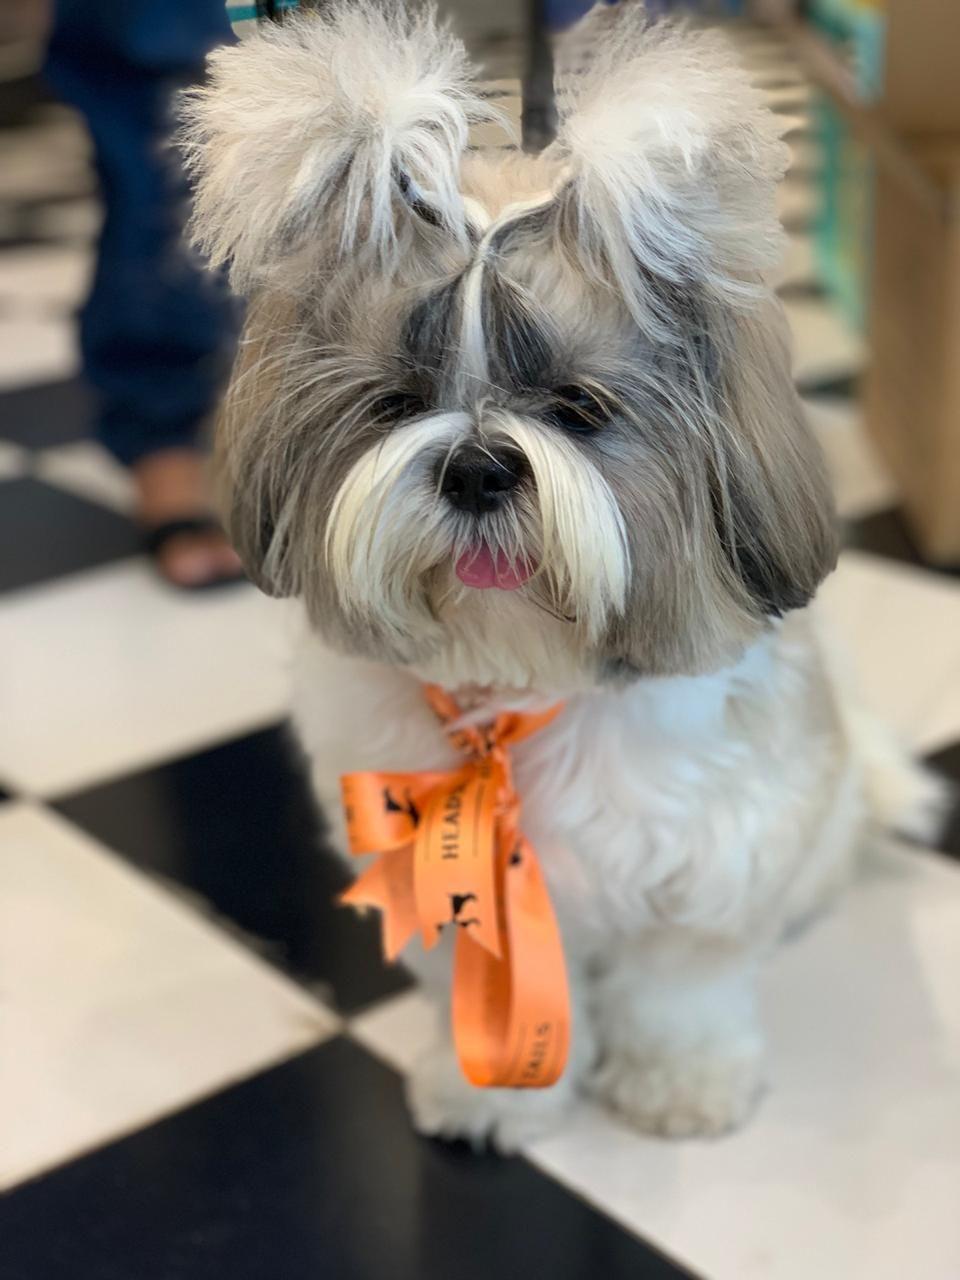 Avoid The Trouble Of A Messy Bath At Home And Bring Your Pet By For A Groom Gentle Shampoos And Conditioners Professional Gr Gentle Shampoo Pet Spa Your Pet